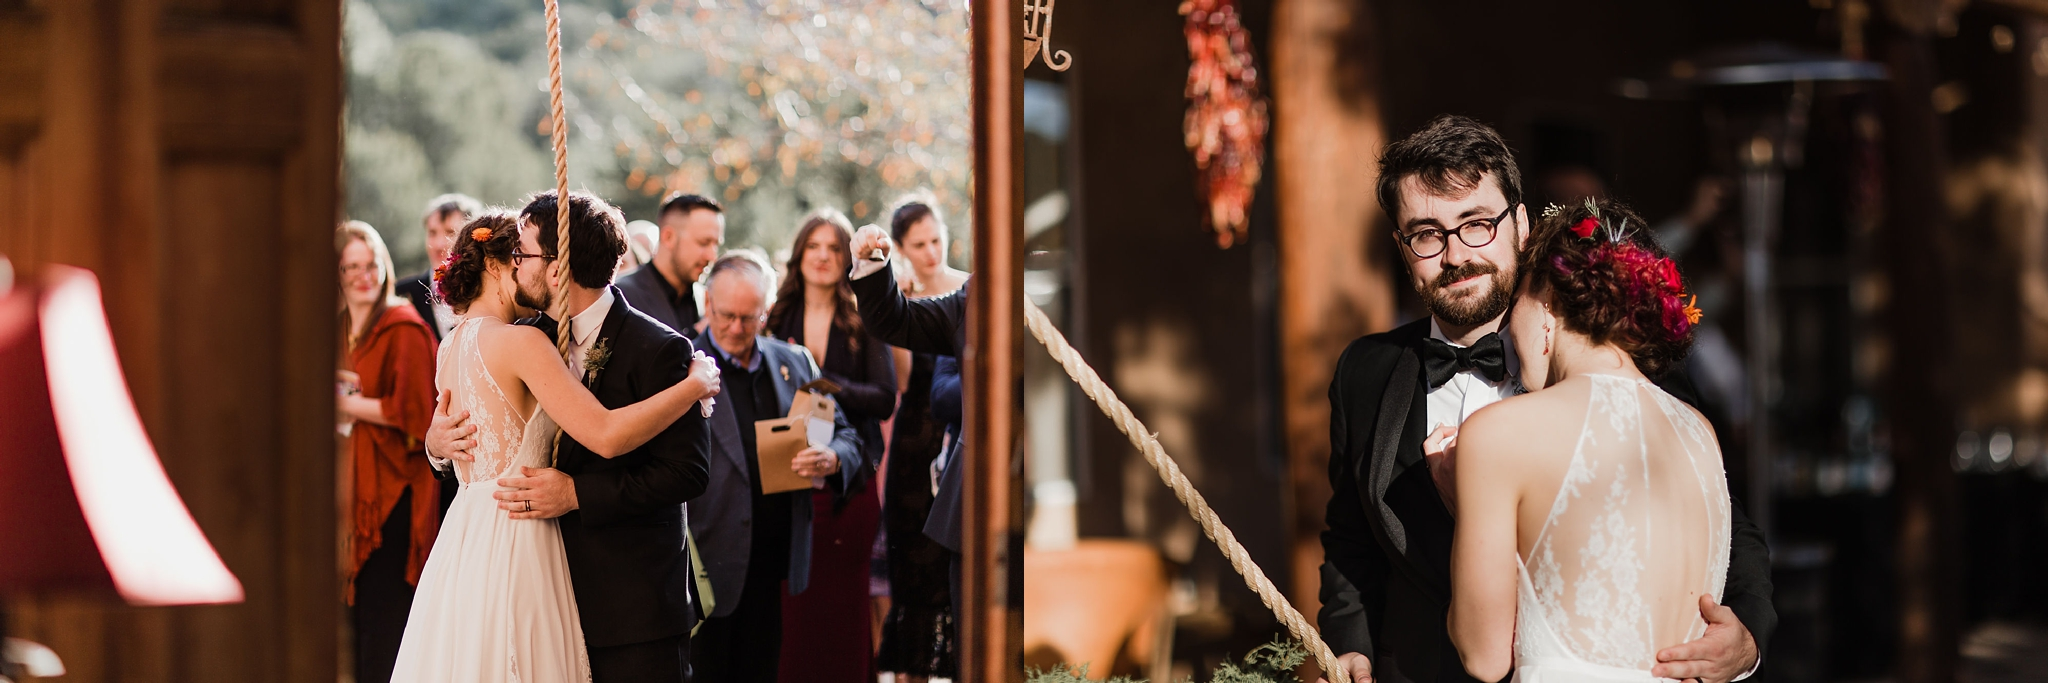 Alicia+lucia+photography+-+albuquerque+wedding+photographer+-+santa+fe+wedding+photography+-+new+mexico+wedding+photographer+-+new+mexico+wedding+-+albuquerque+wedding+-+santa+fe+wedding+-+wedding+romantics_0009.jpg